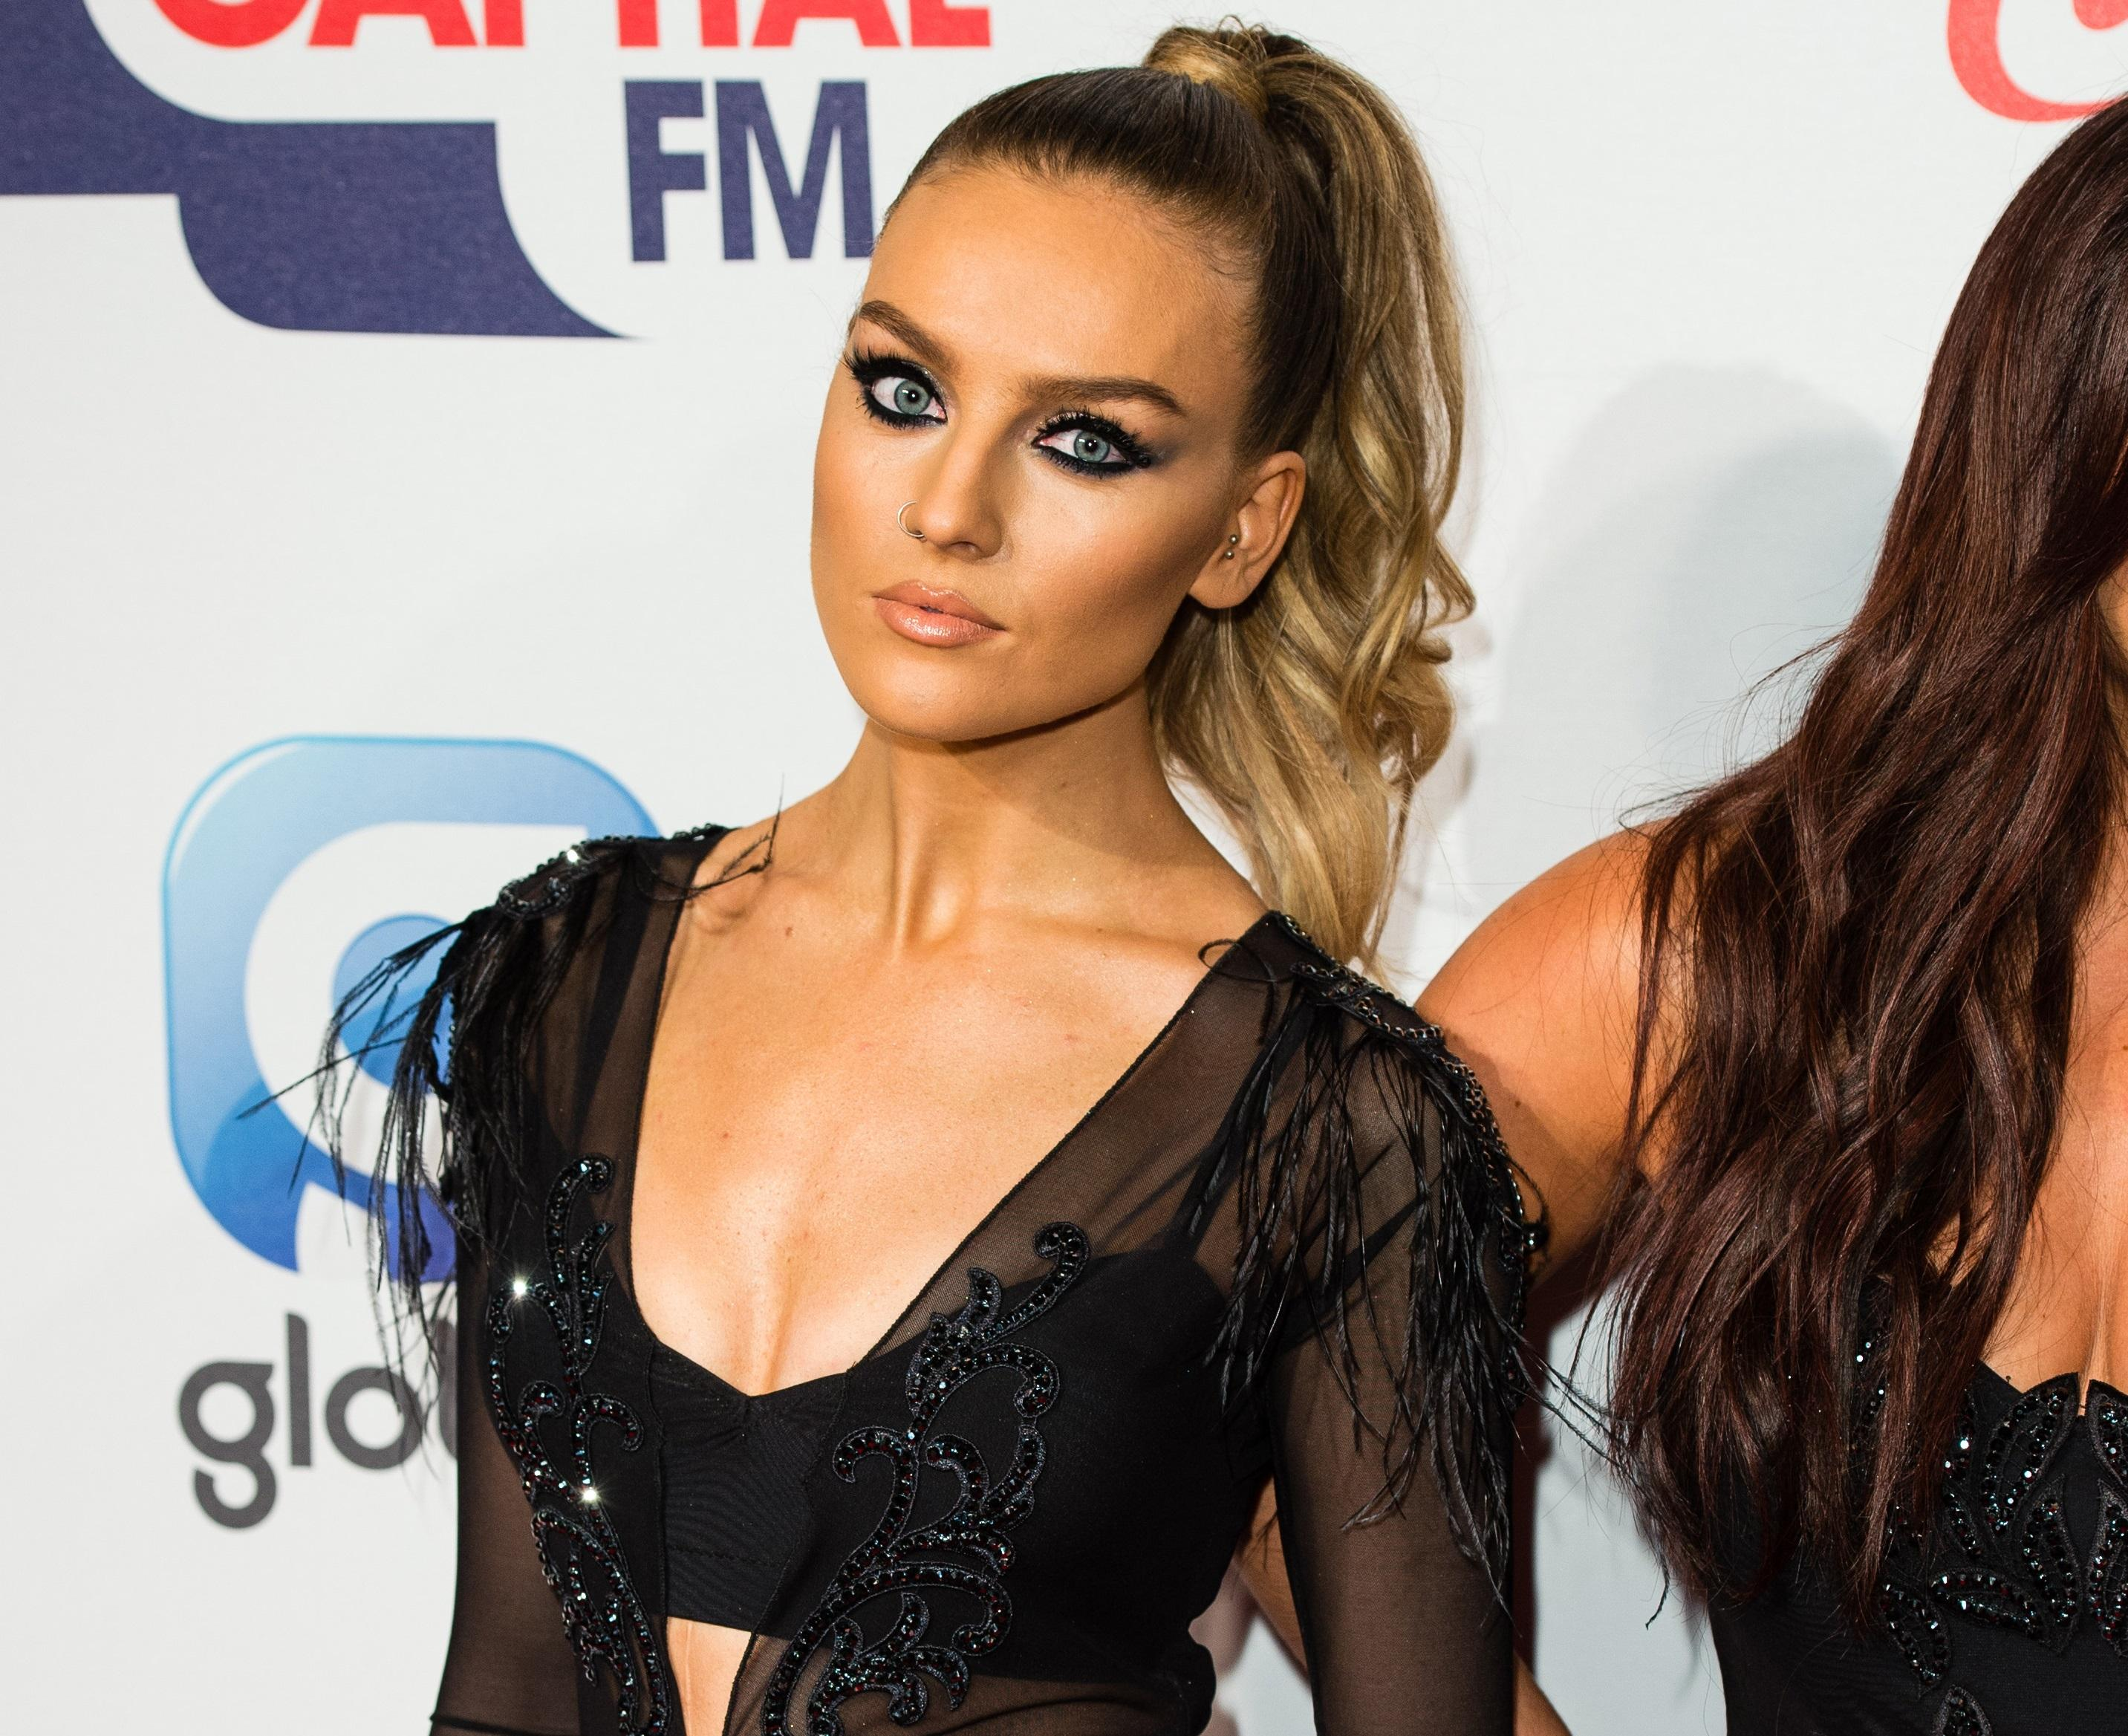 Perrie Edwards Zayn Malik breakup